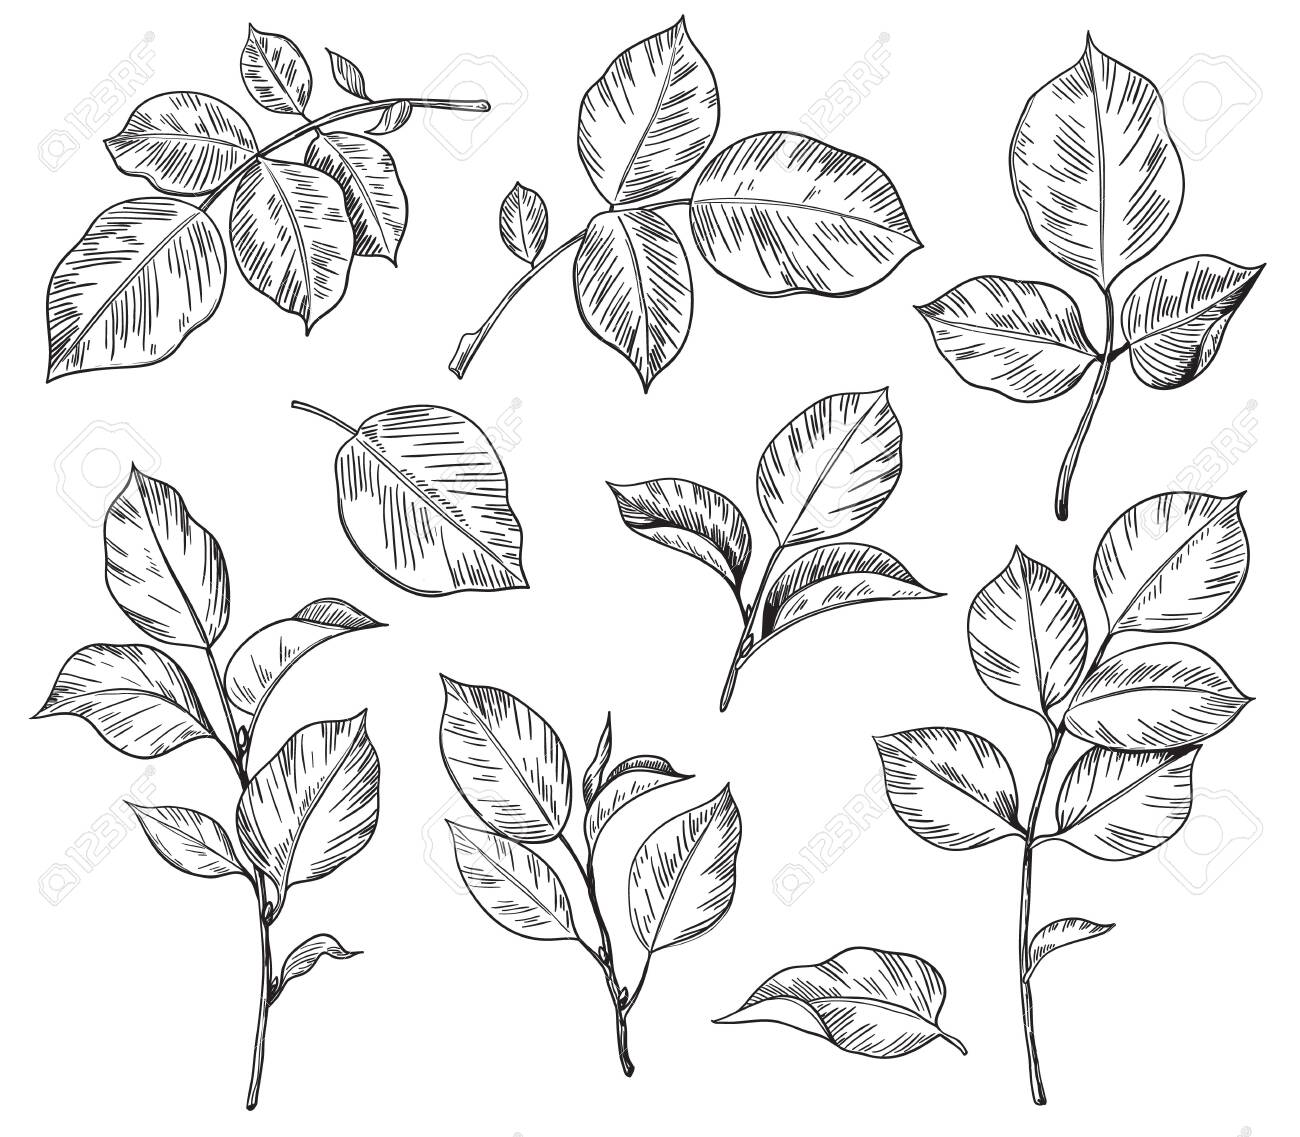 Hand drawn set of rose leaves isolated on white background. Monochrome floral elements, plant parts vector sketch. - 142944220